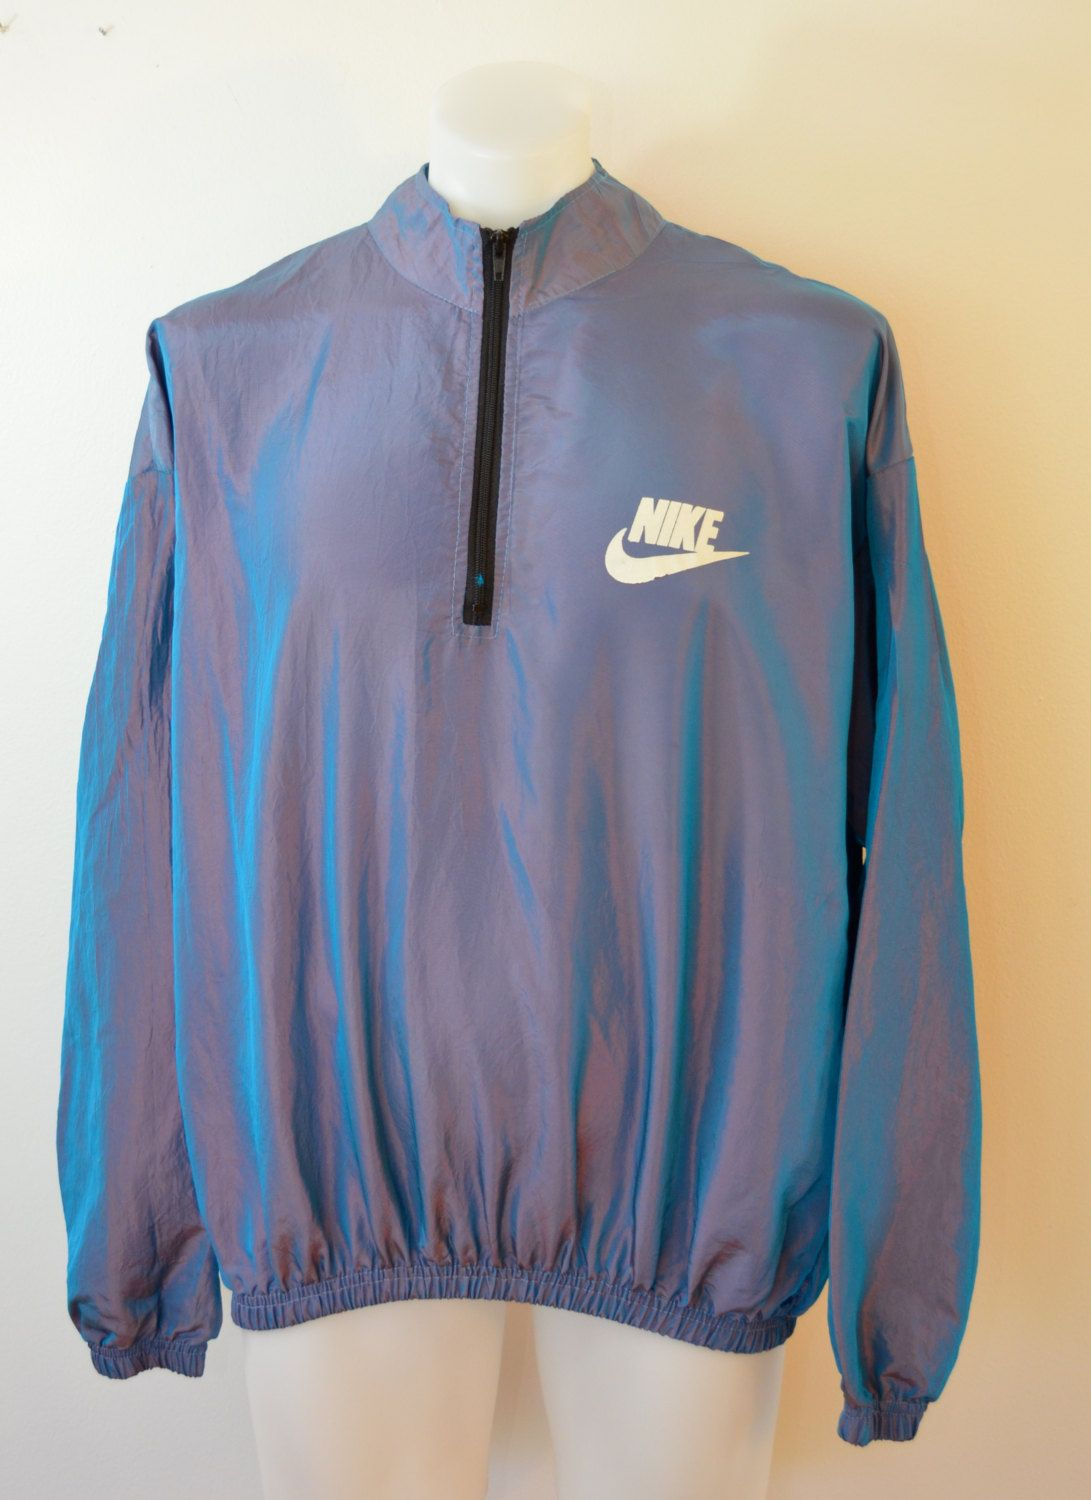 Vintage NIKE Iridescent windbreaker jacket pullover 1980 s made in USA by  ilovevintagestuff on Etsy 33f9244e1